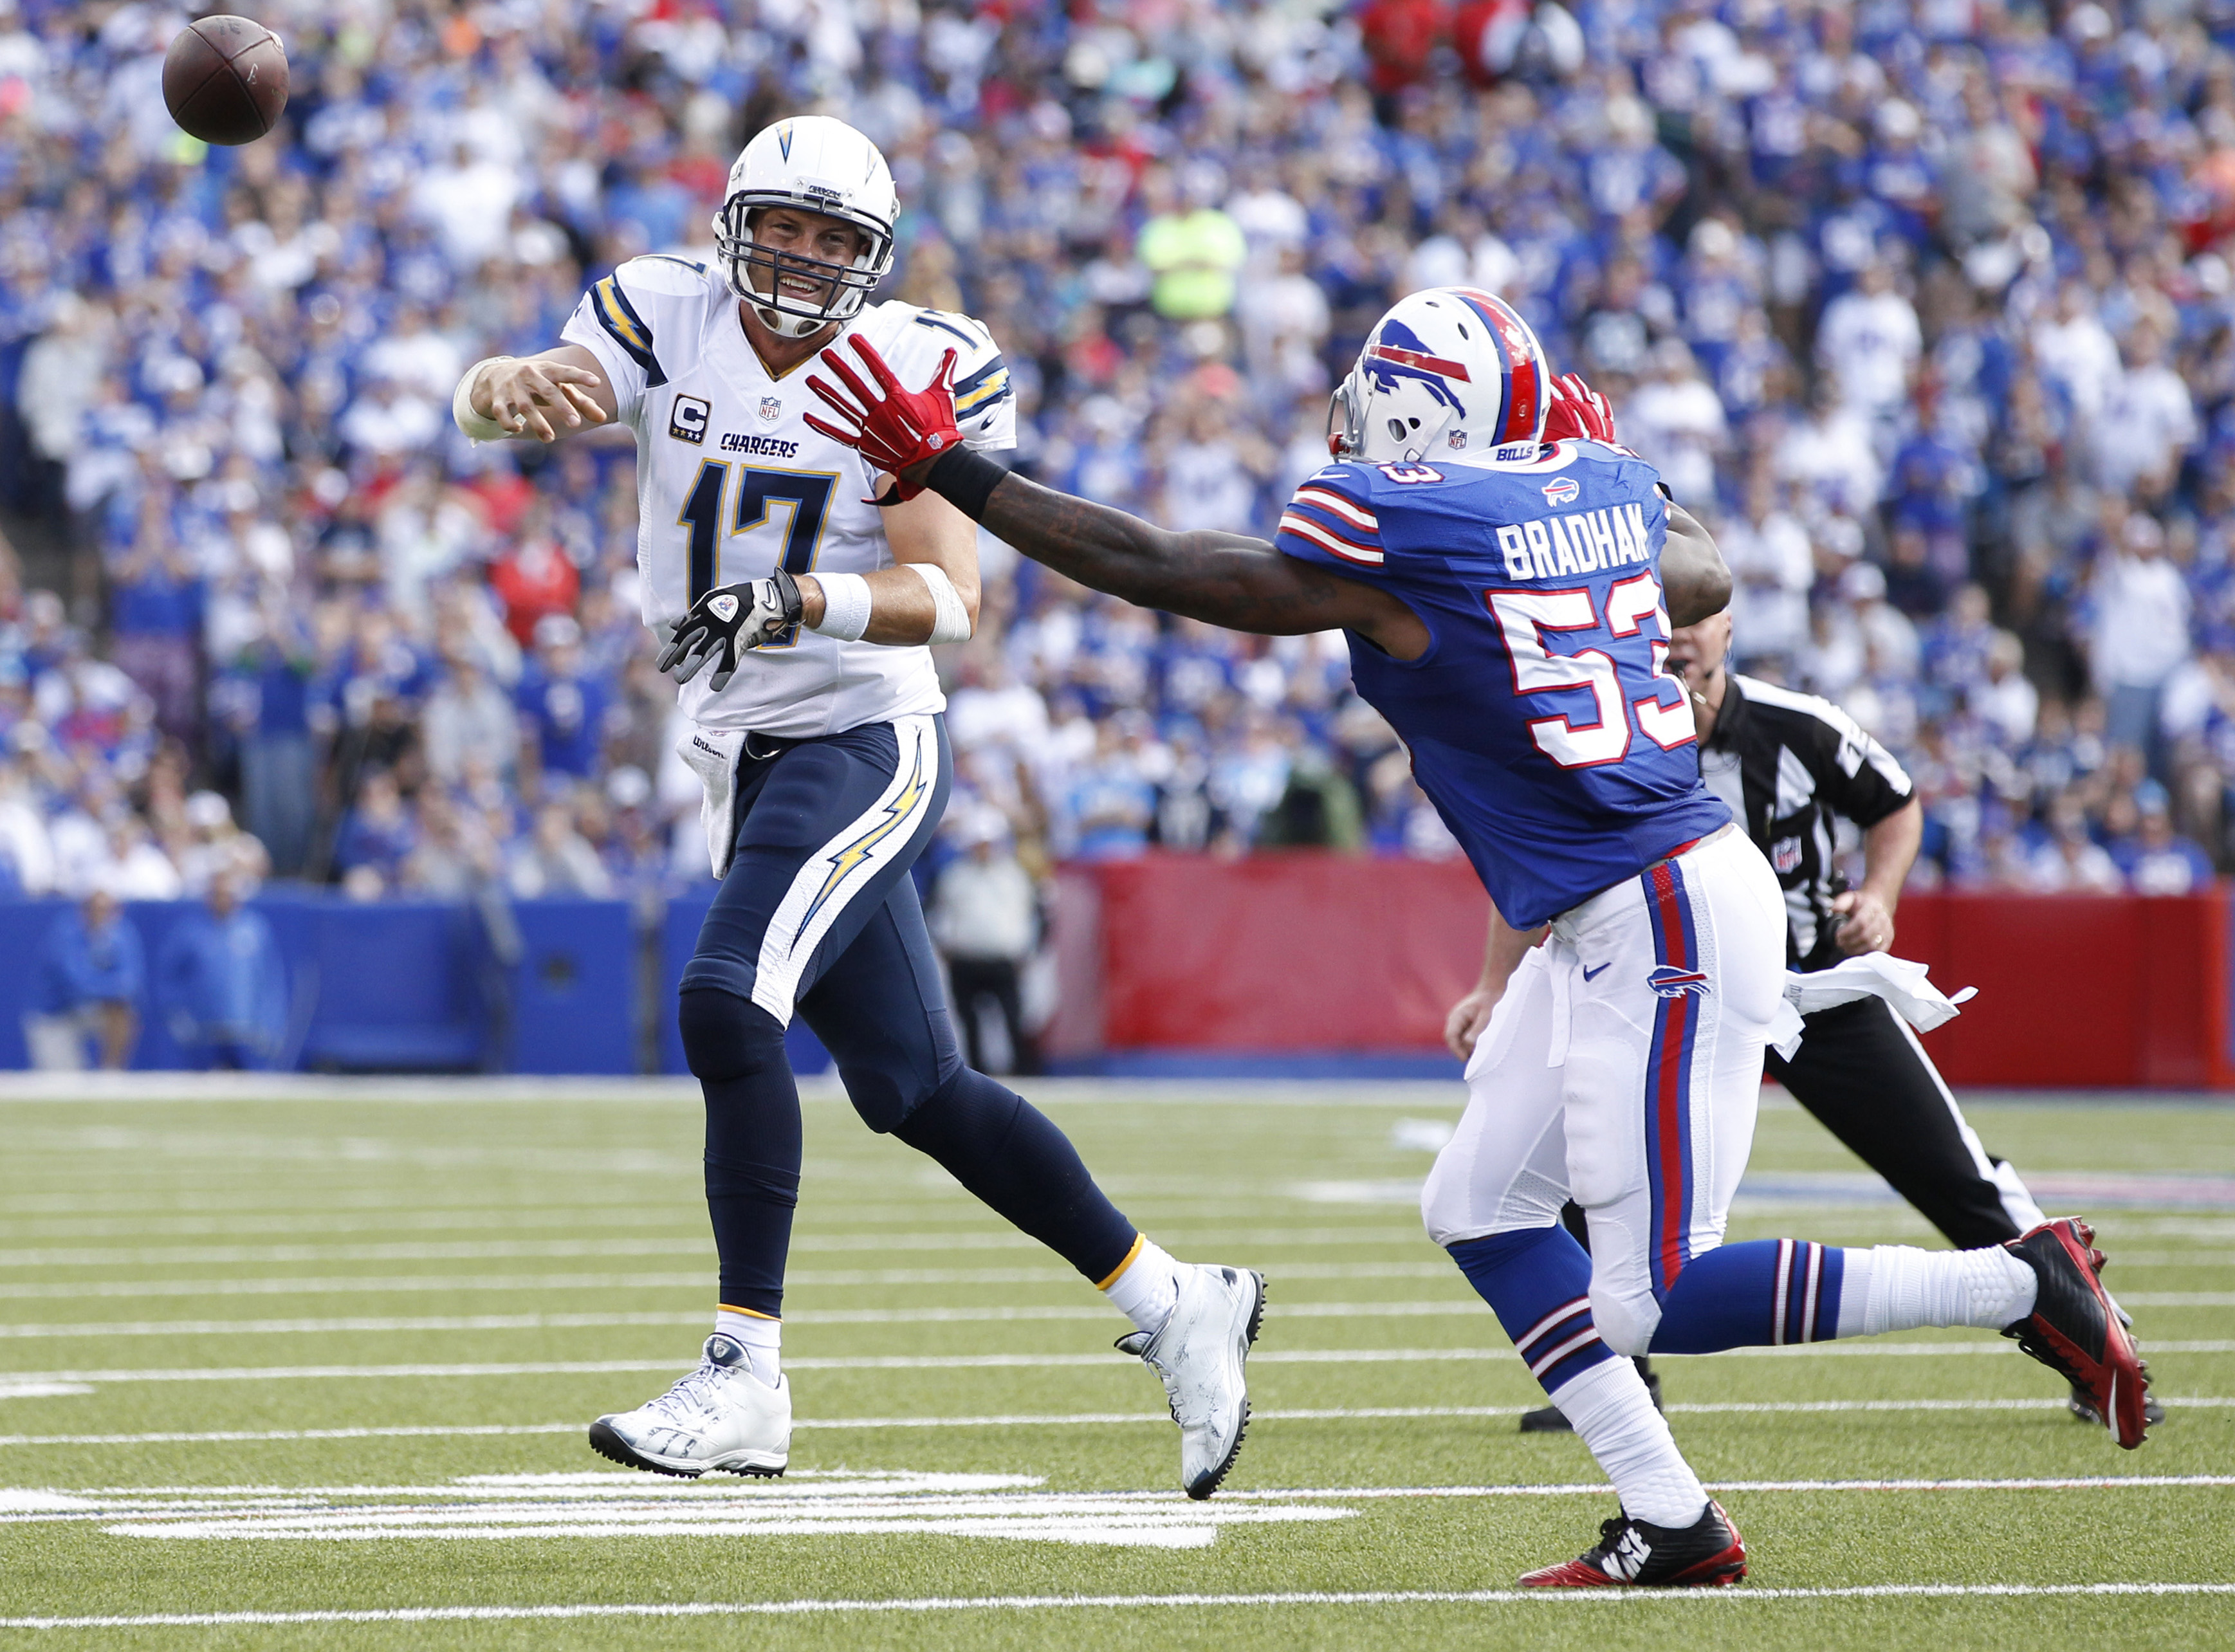 8099203-nfl-san-diego-chargers-at-buffalo-bills